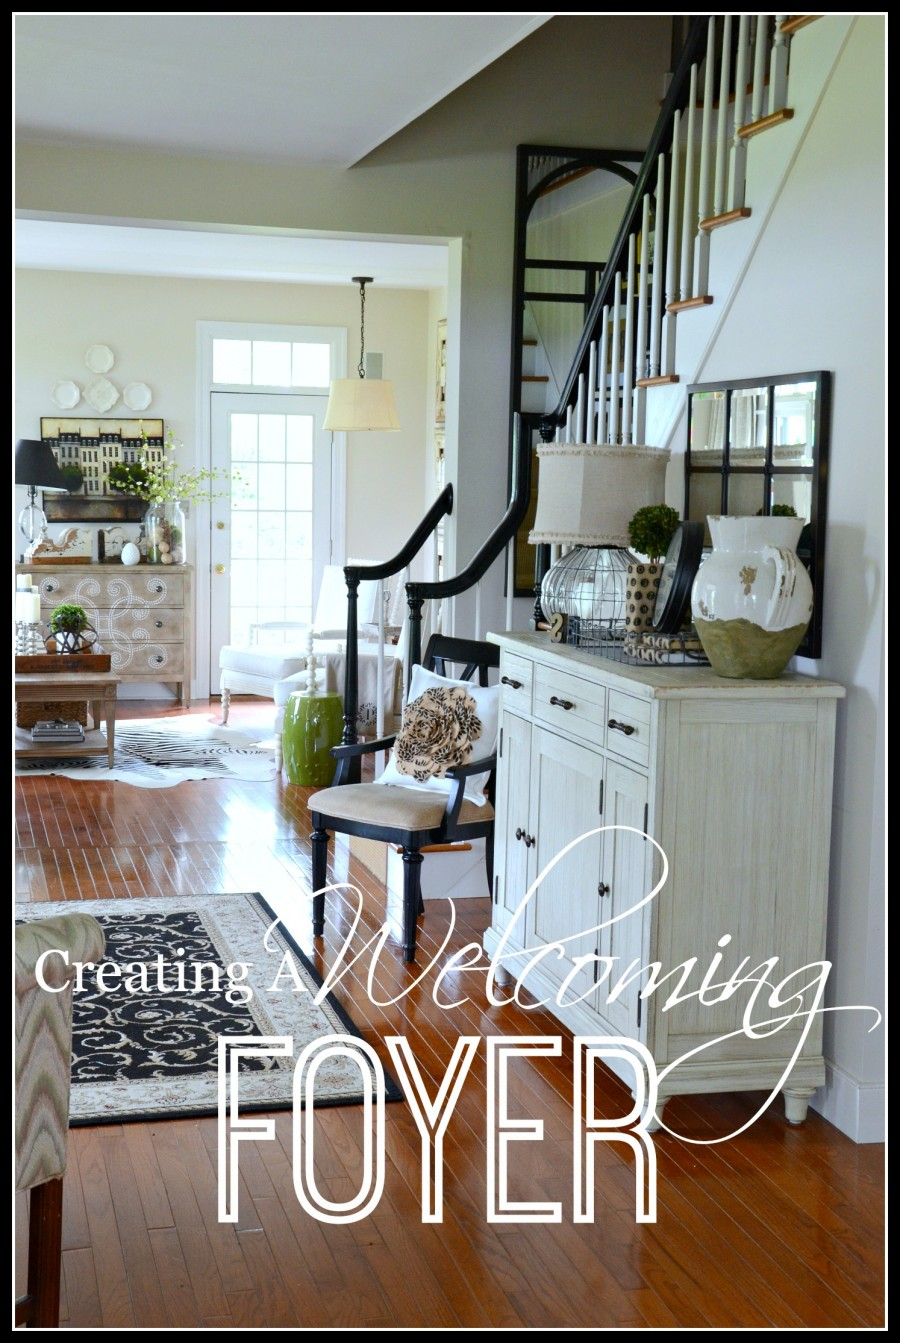 Fabulous Foyer Decorating Ideas: CREATING A WELCOMING FOYER